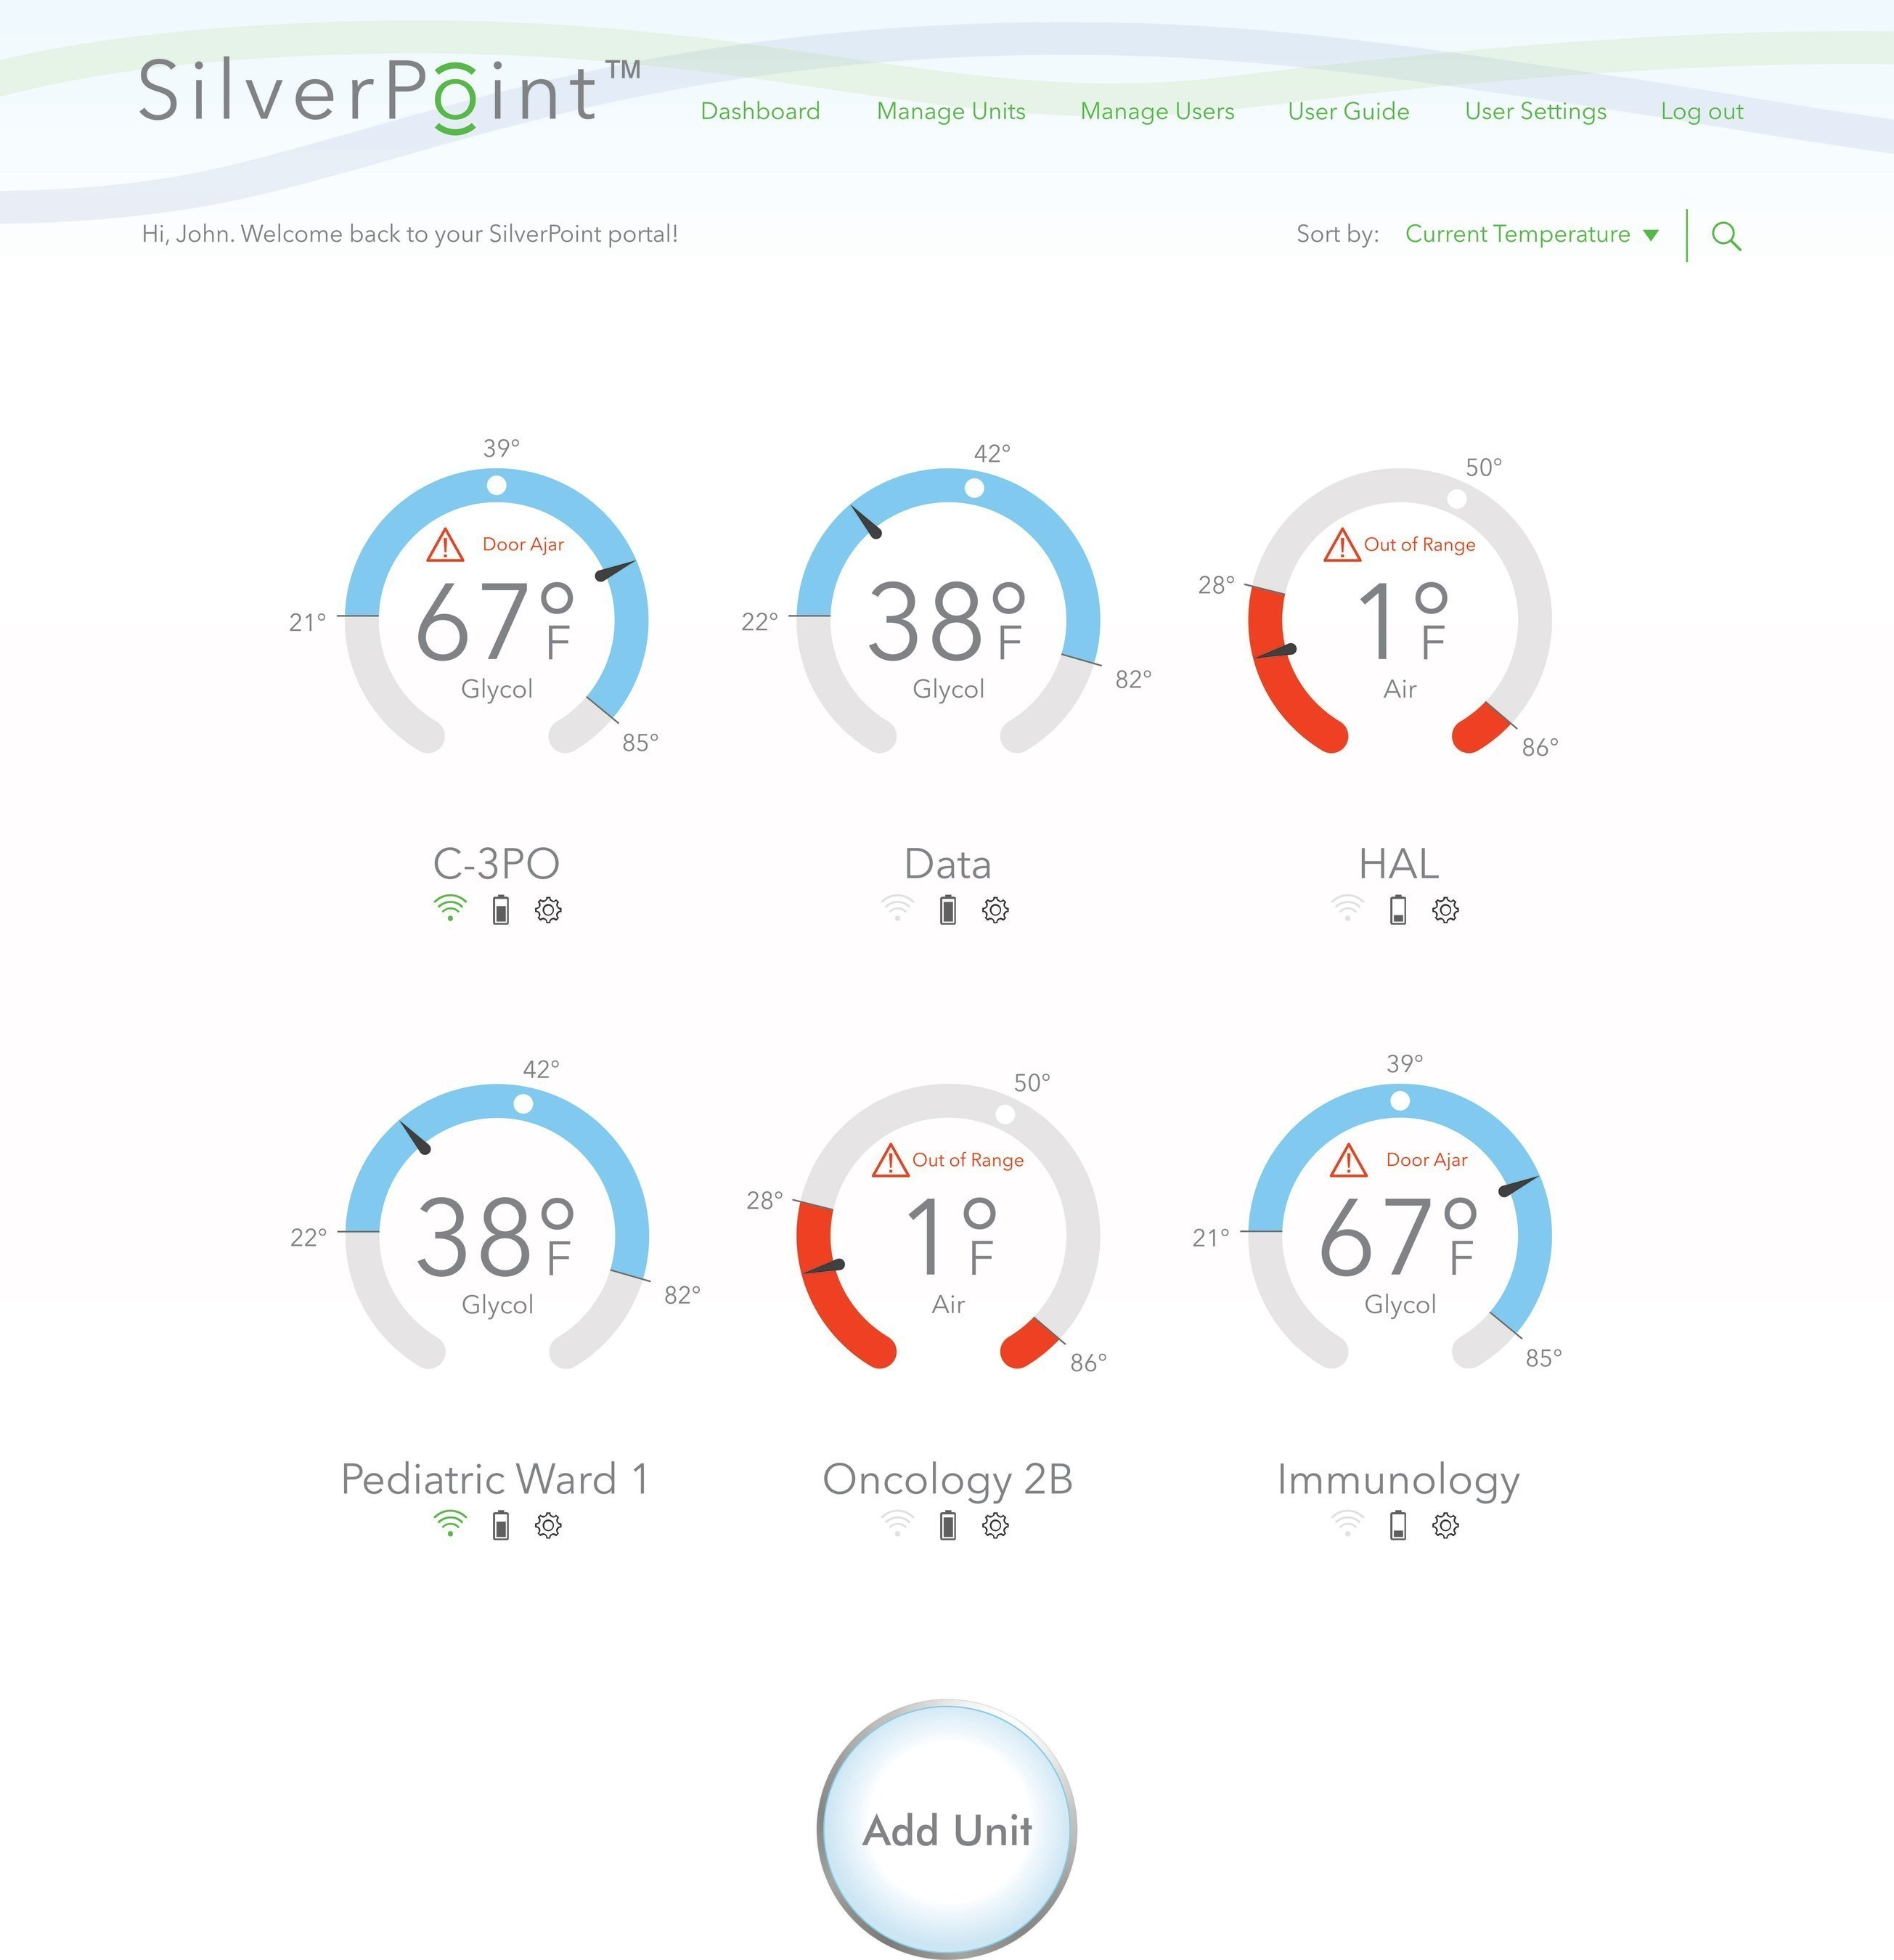 SilverPoint Wi-Fi enabled temperature monitoring prompts peace of mind among pharmacy and clinical professionals